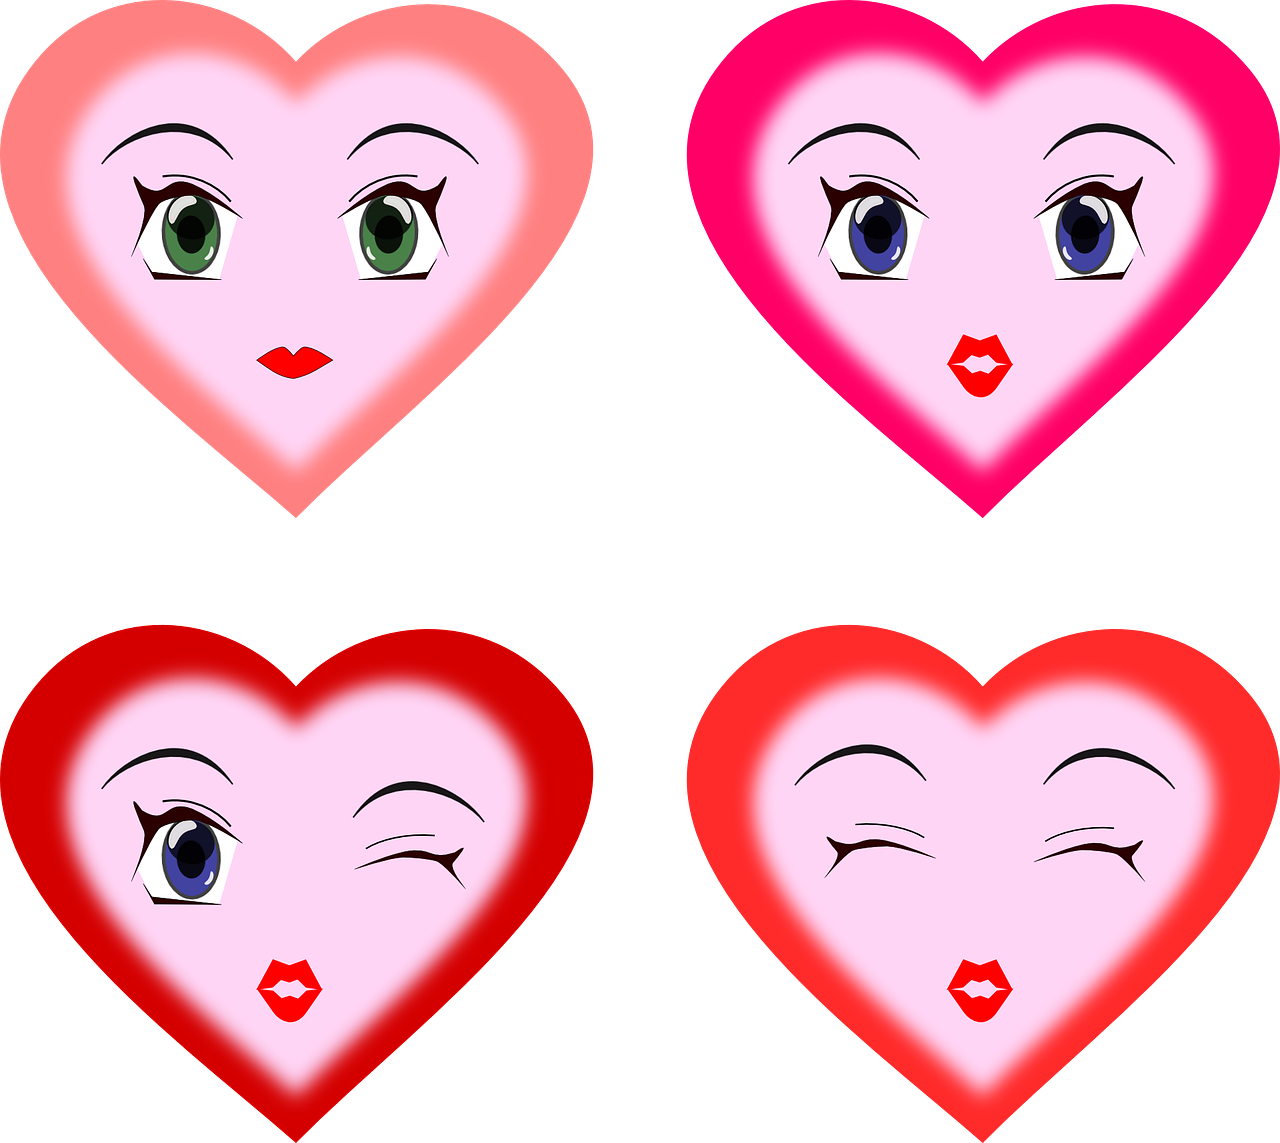 The Look of Love – nonverbal communication